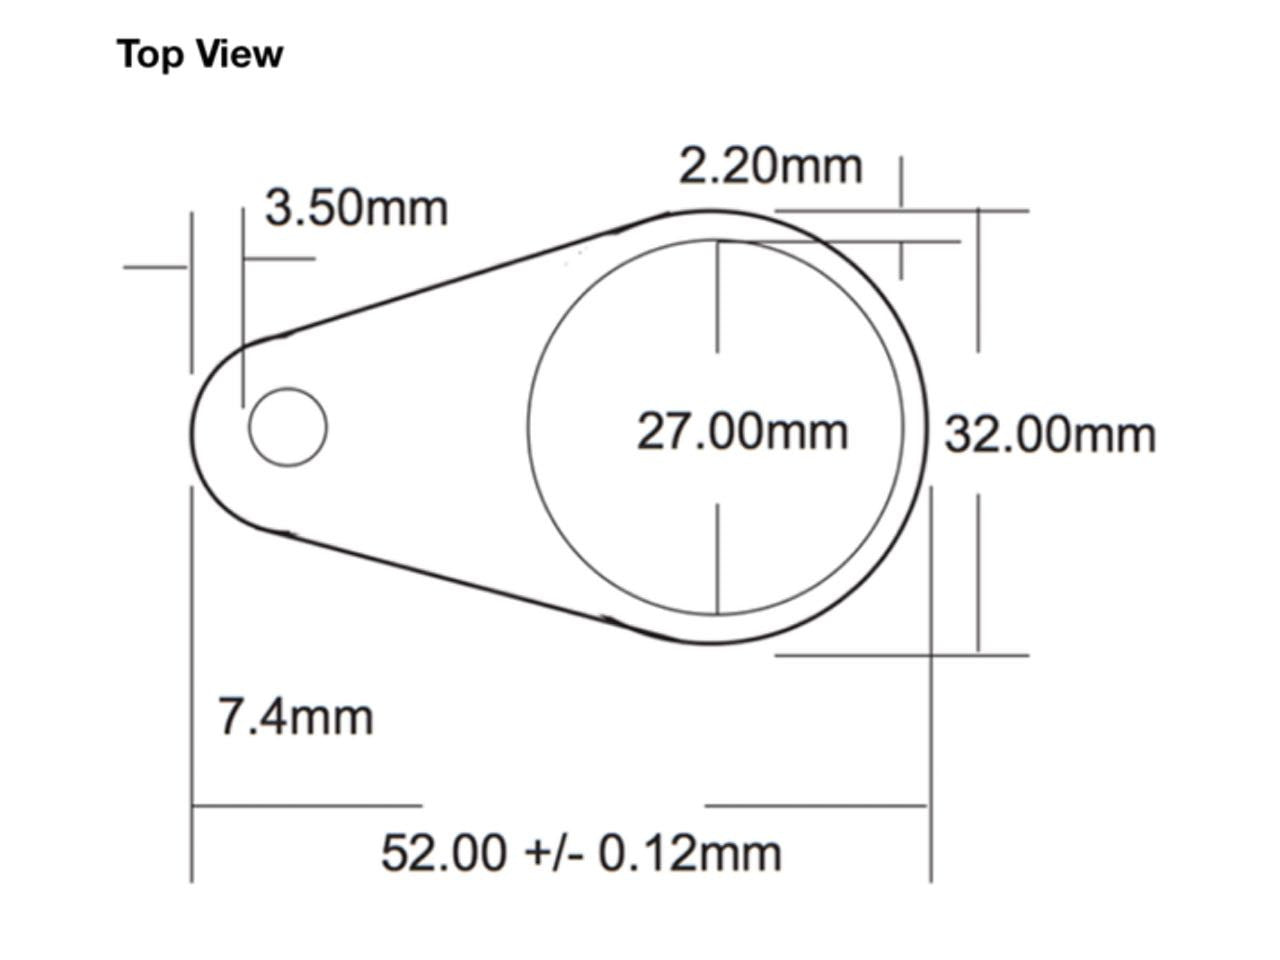 T5577 Keyfob Schematic Top